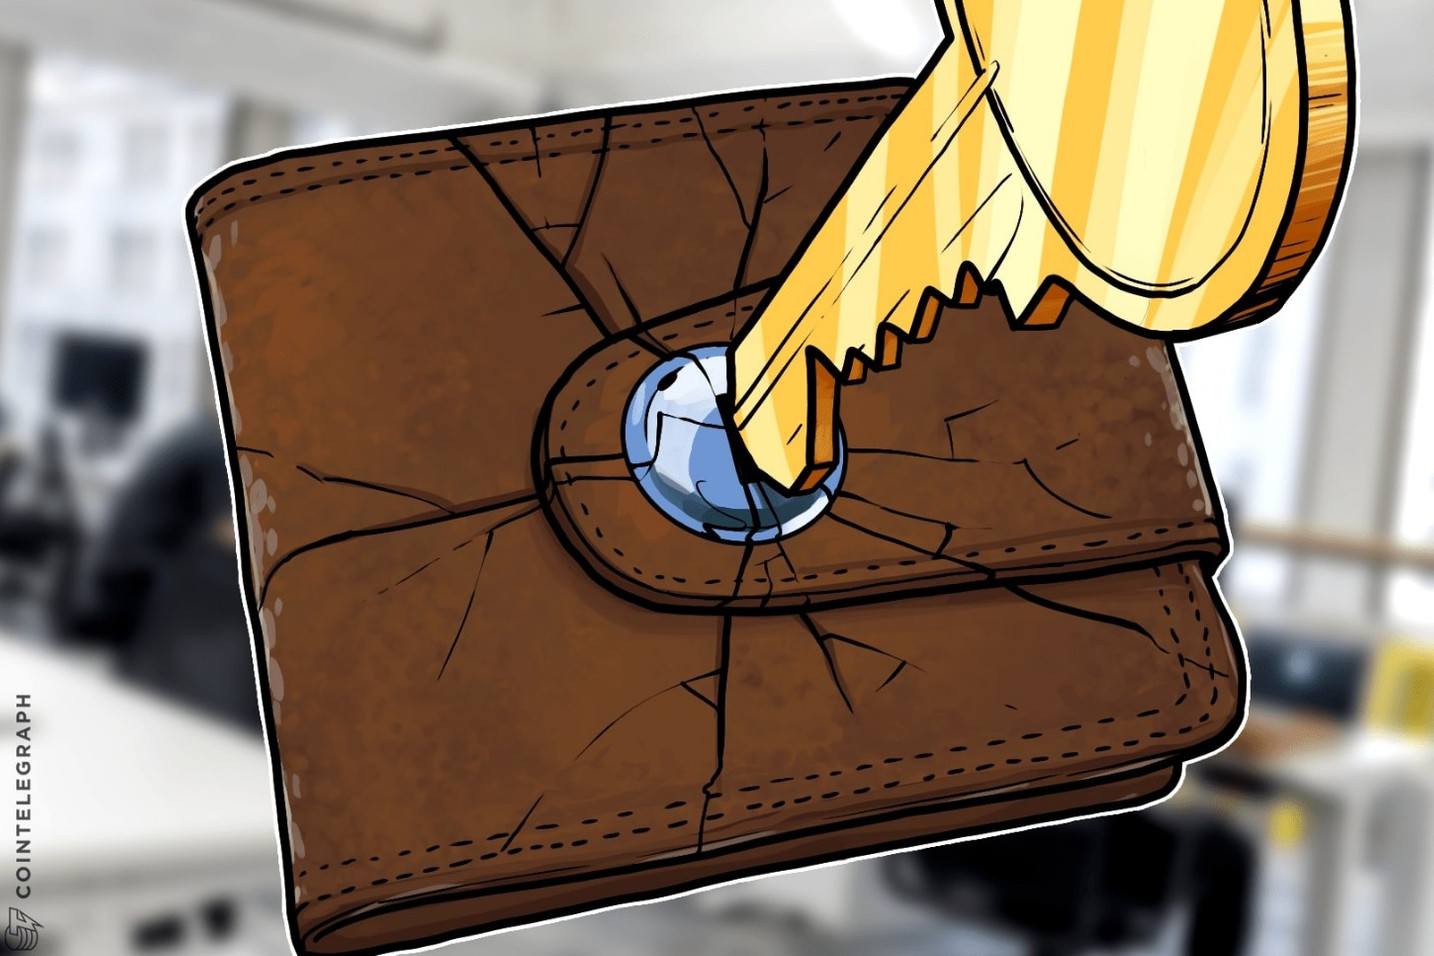 'Unhackable' Crypto Wallet Reportedly Breached, Hackers Claim to Meet Bounty Conditions